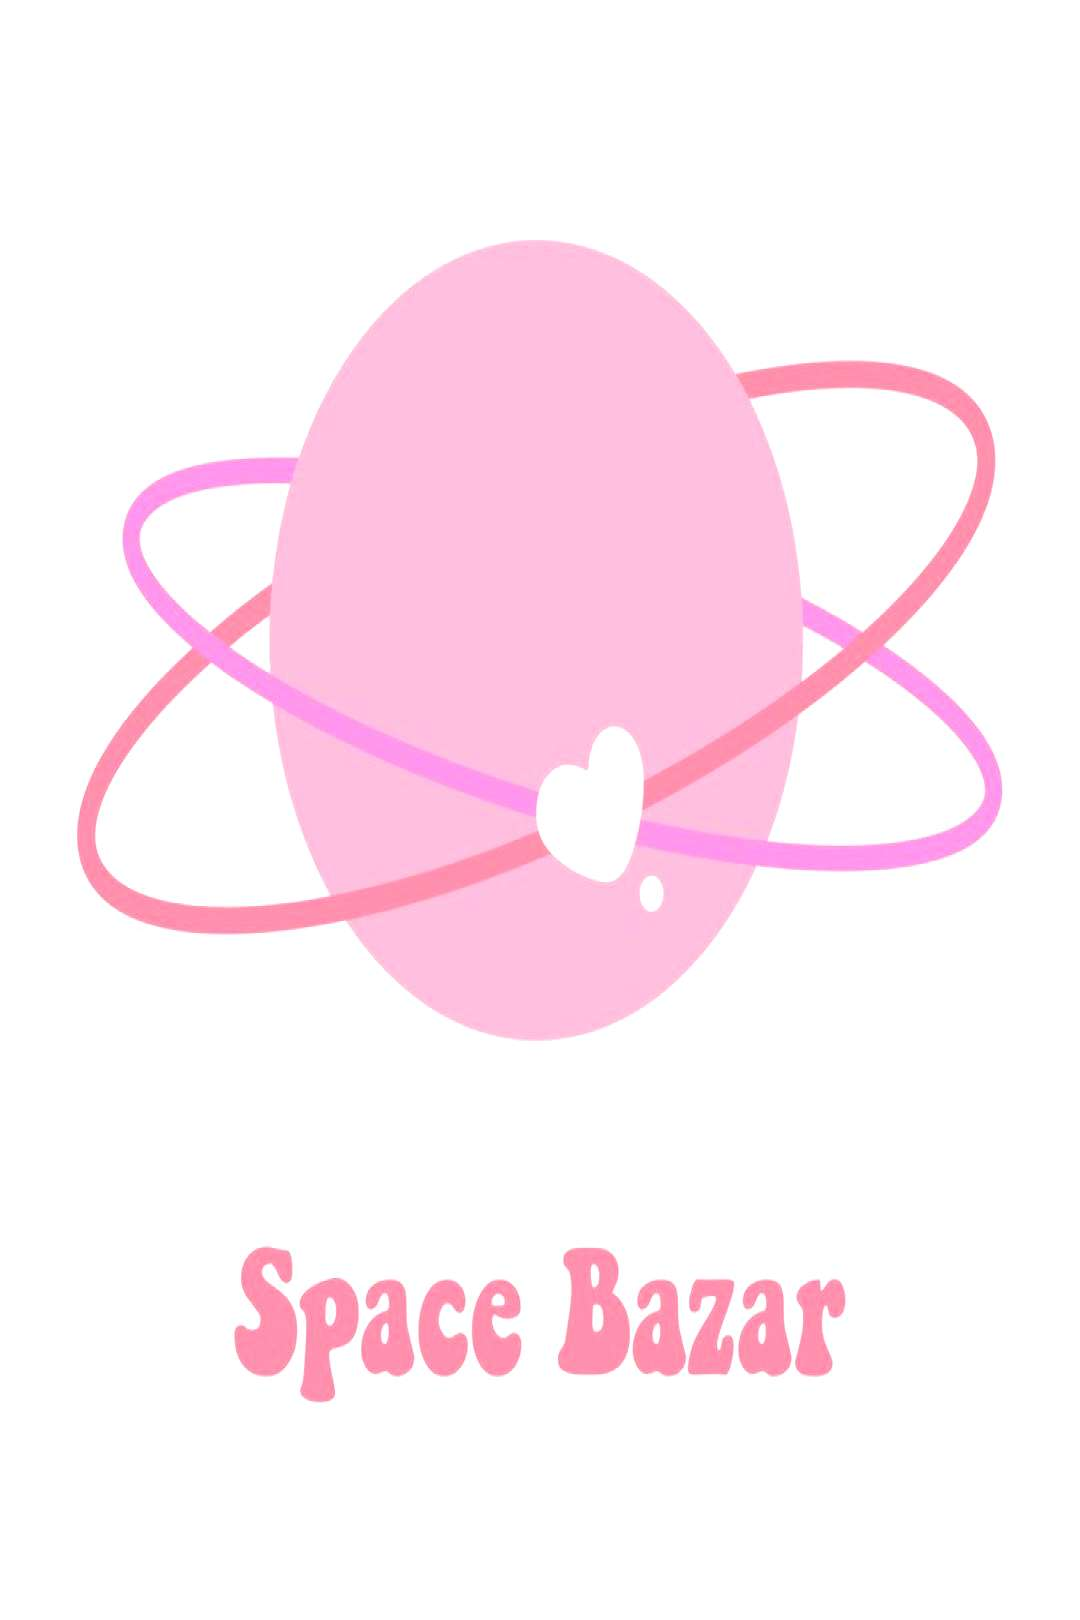 Yoon on April 20 2020 possible text that says Space Bazar